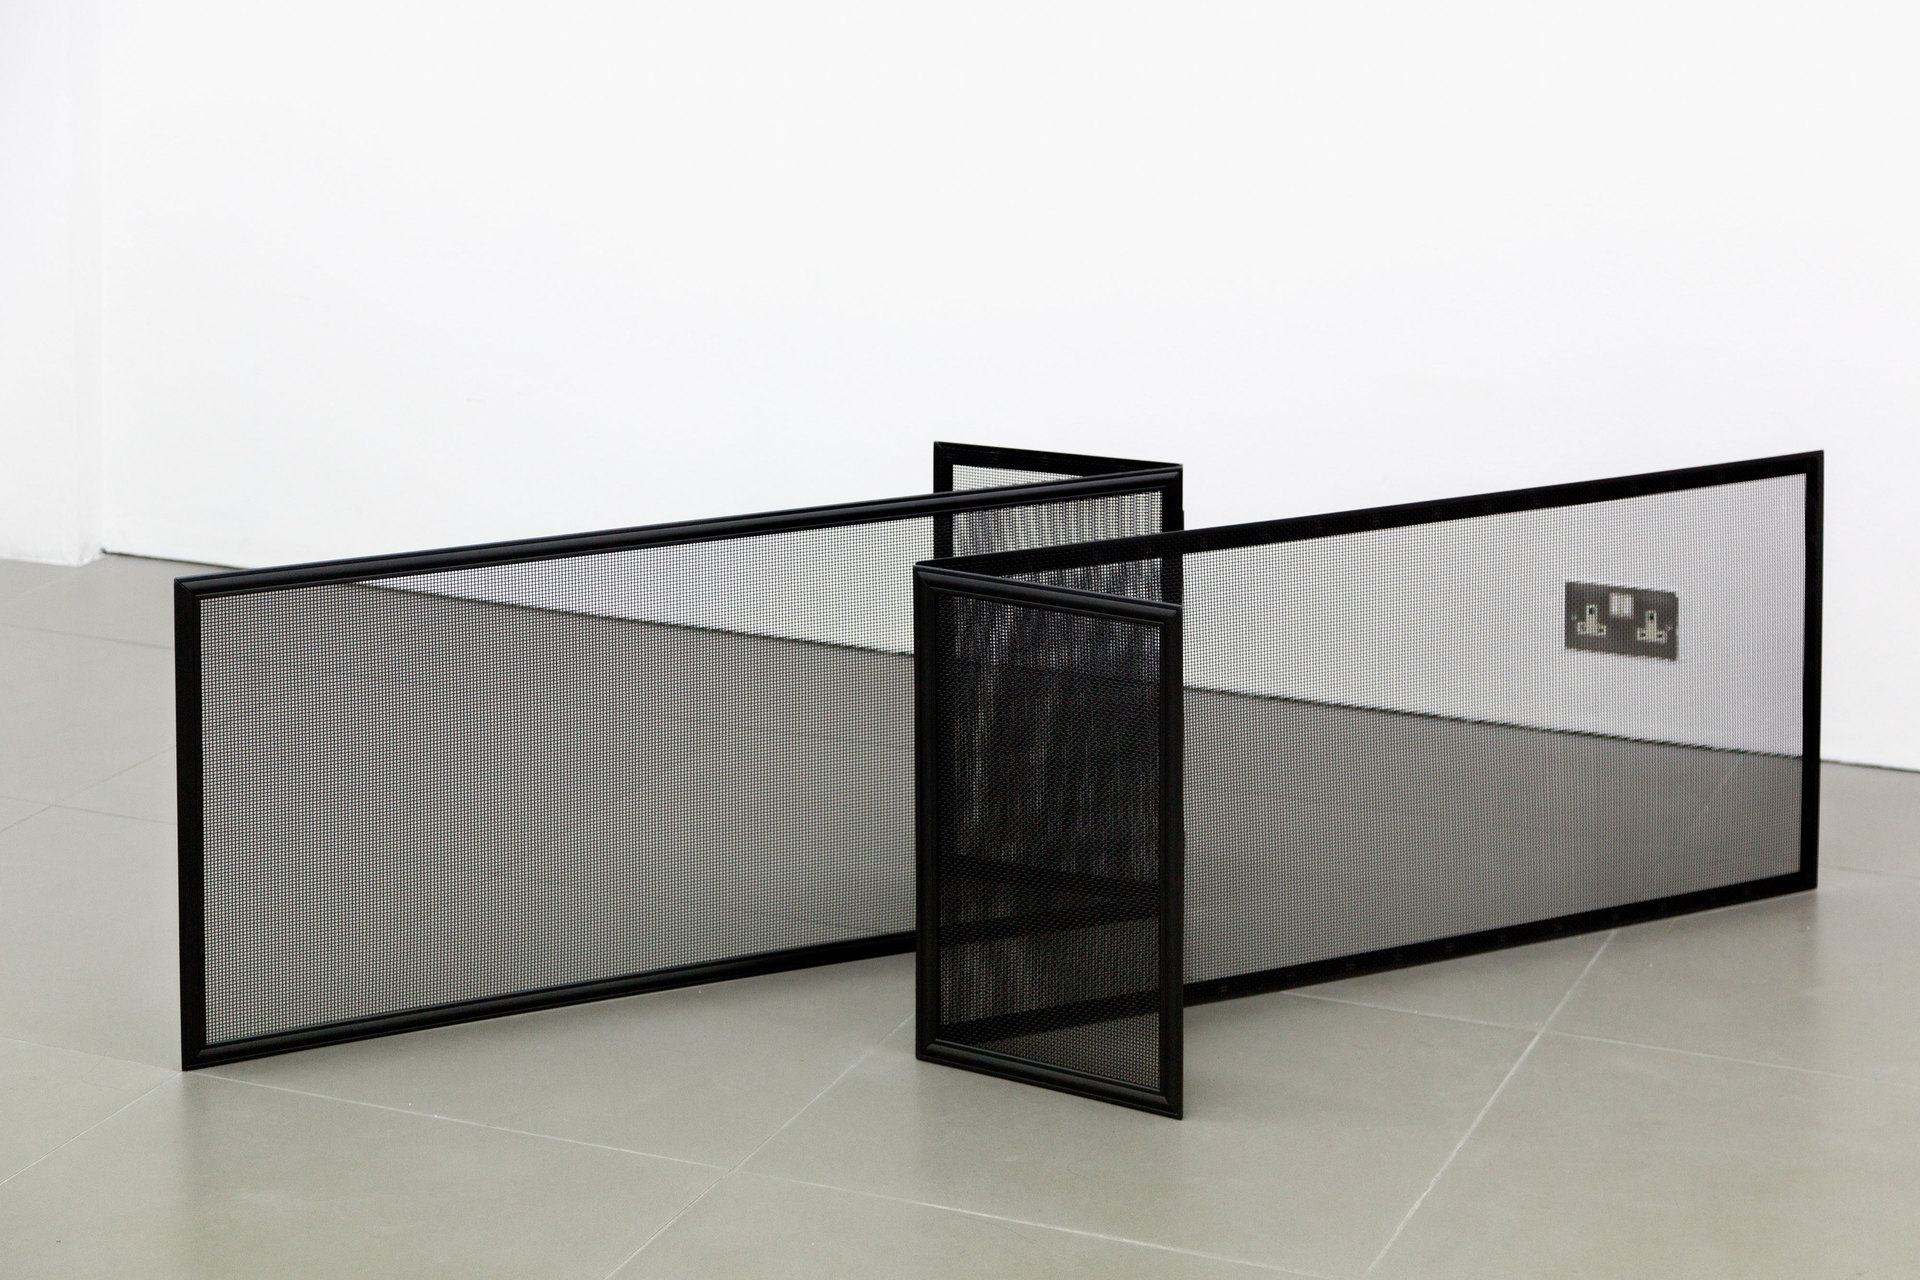 Marte Eknæs, Reboot Horizon, 'Affected Atmosphere', 2012, fireplace screens, Cell Project Space